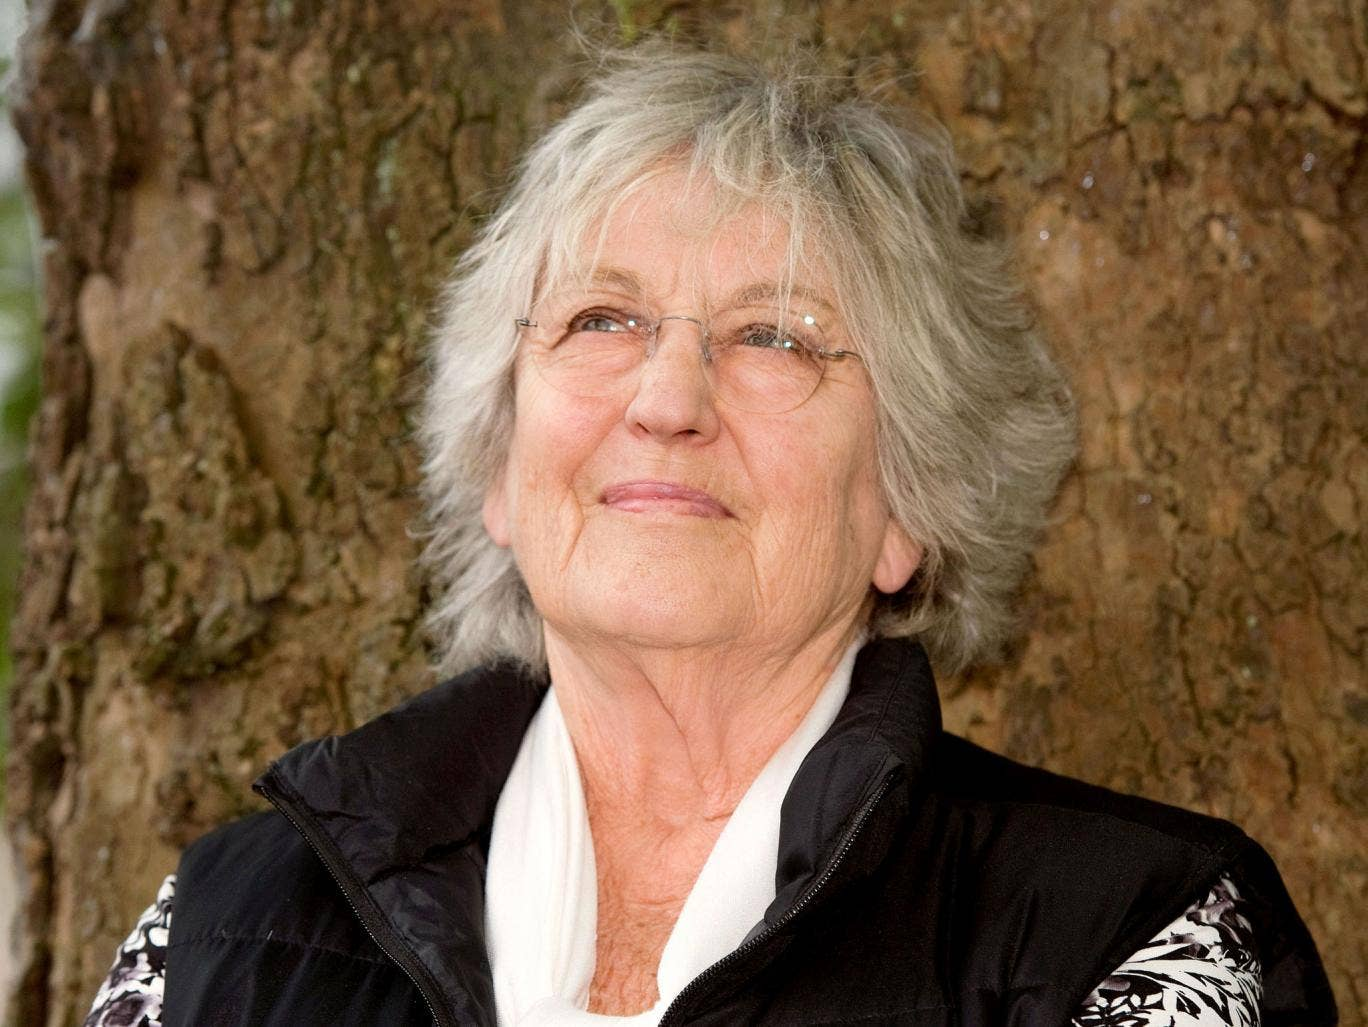 germaine greer - photo #12